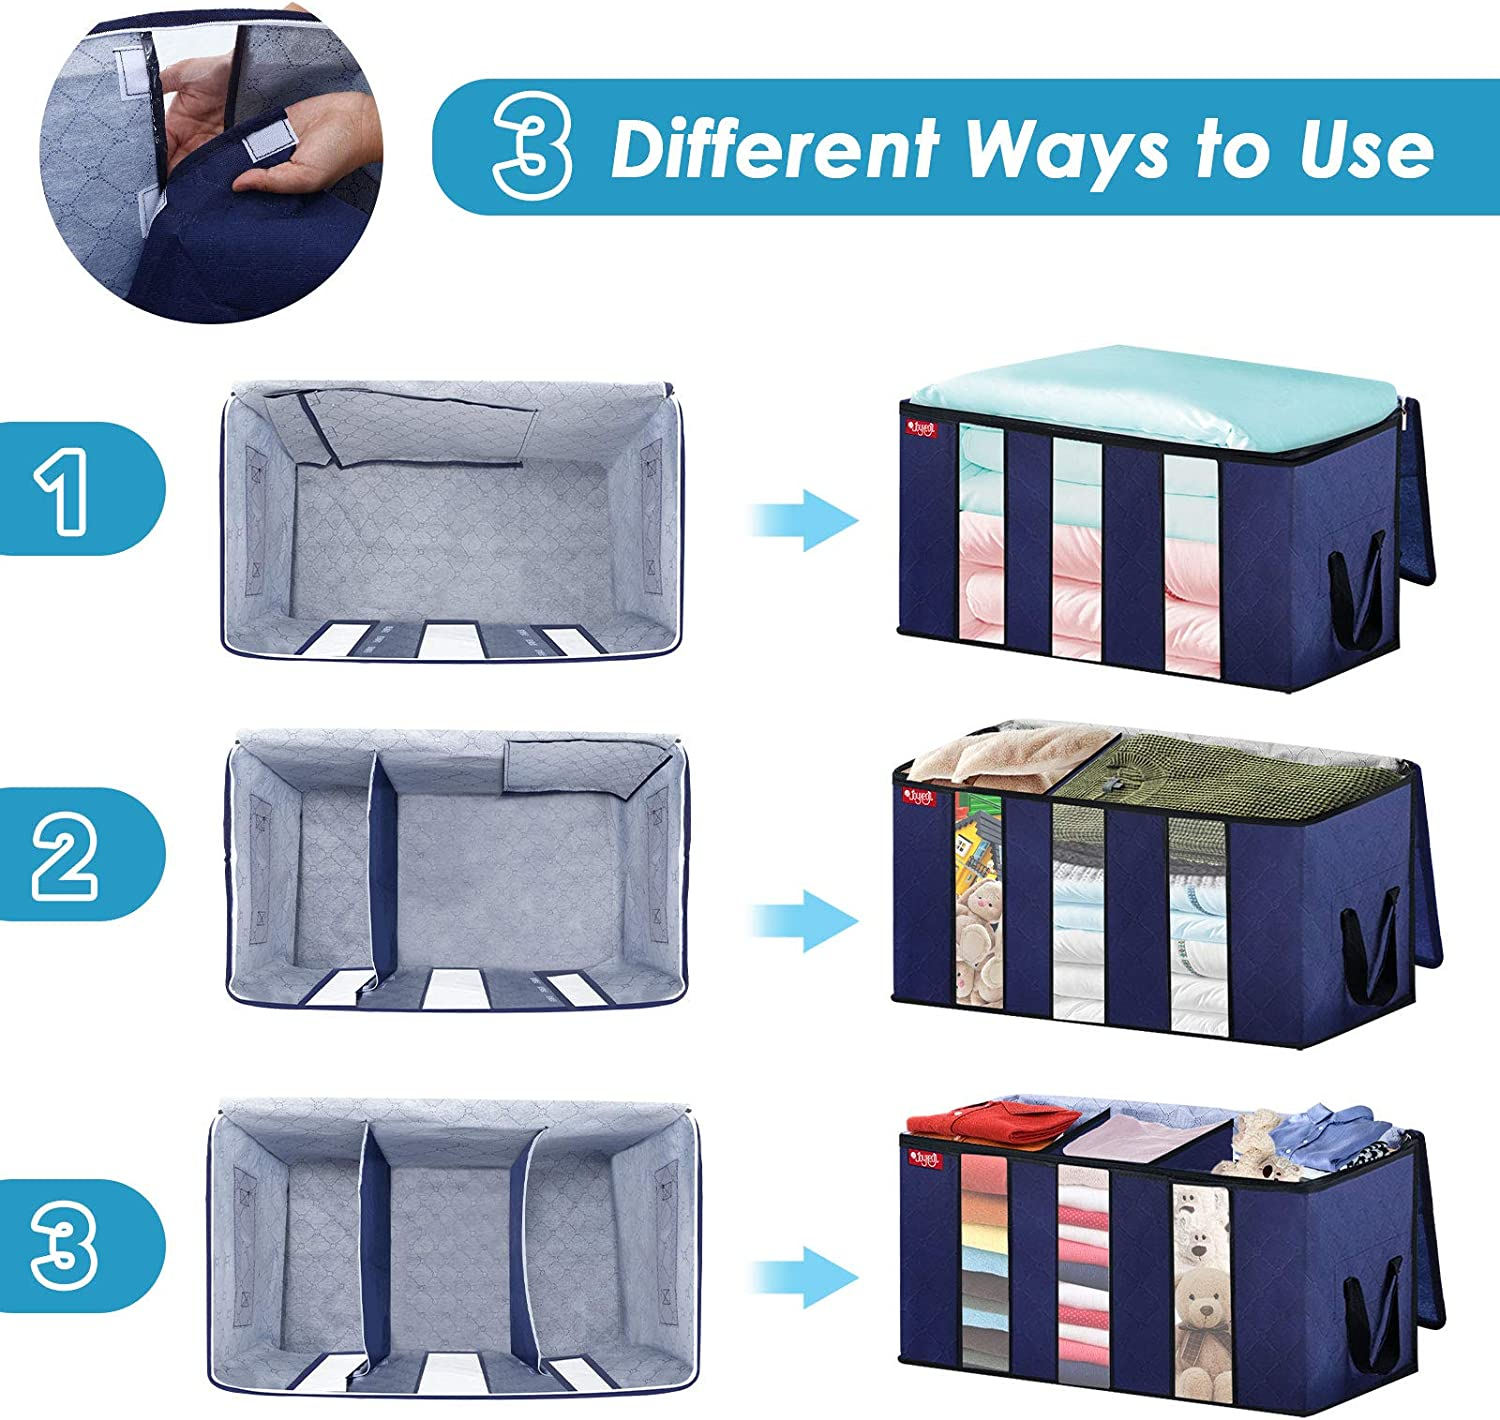 Pack of 4 Large Capacity Comforter Storage Bags Reinforced Handle Stainless Steel Zippers for Blankets,Bedding,Clothes JOYXEON Clothes Storage Bag Closet Organizer with 3 Adjustable Sections